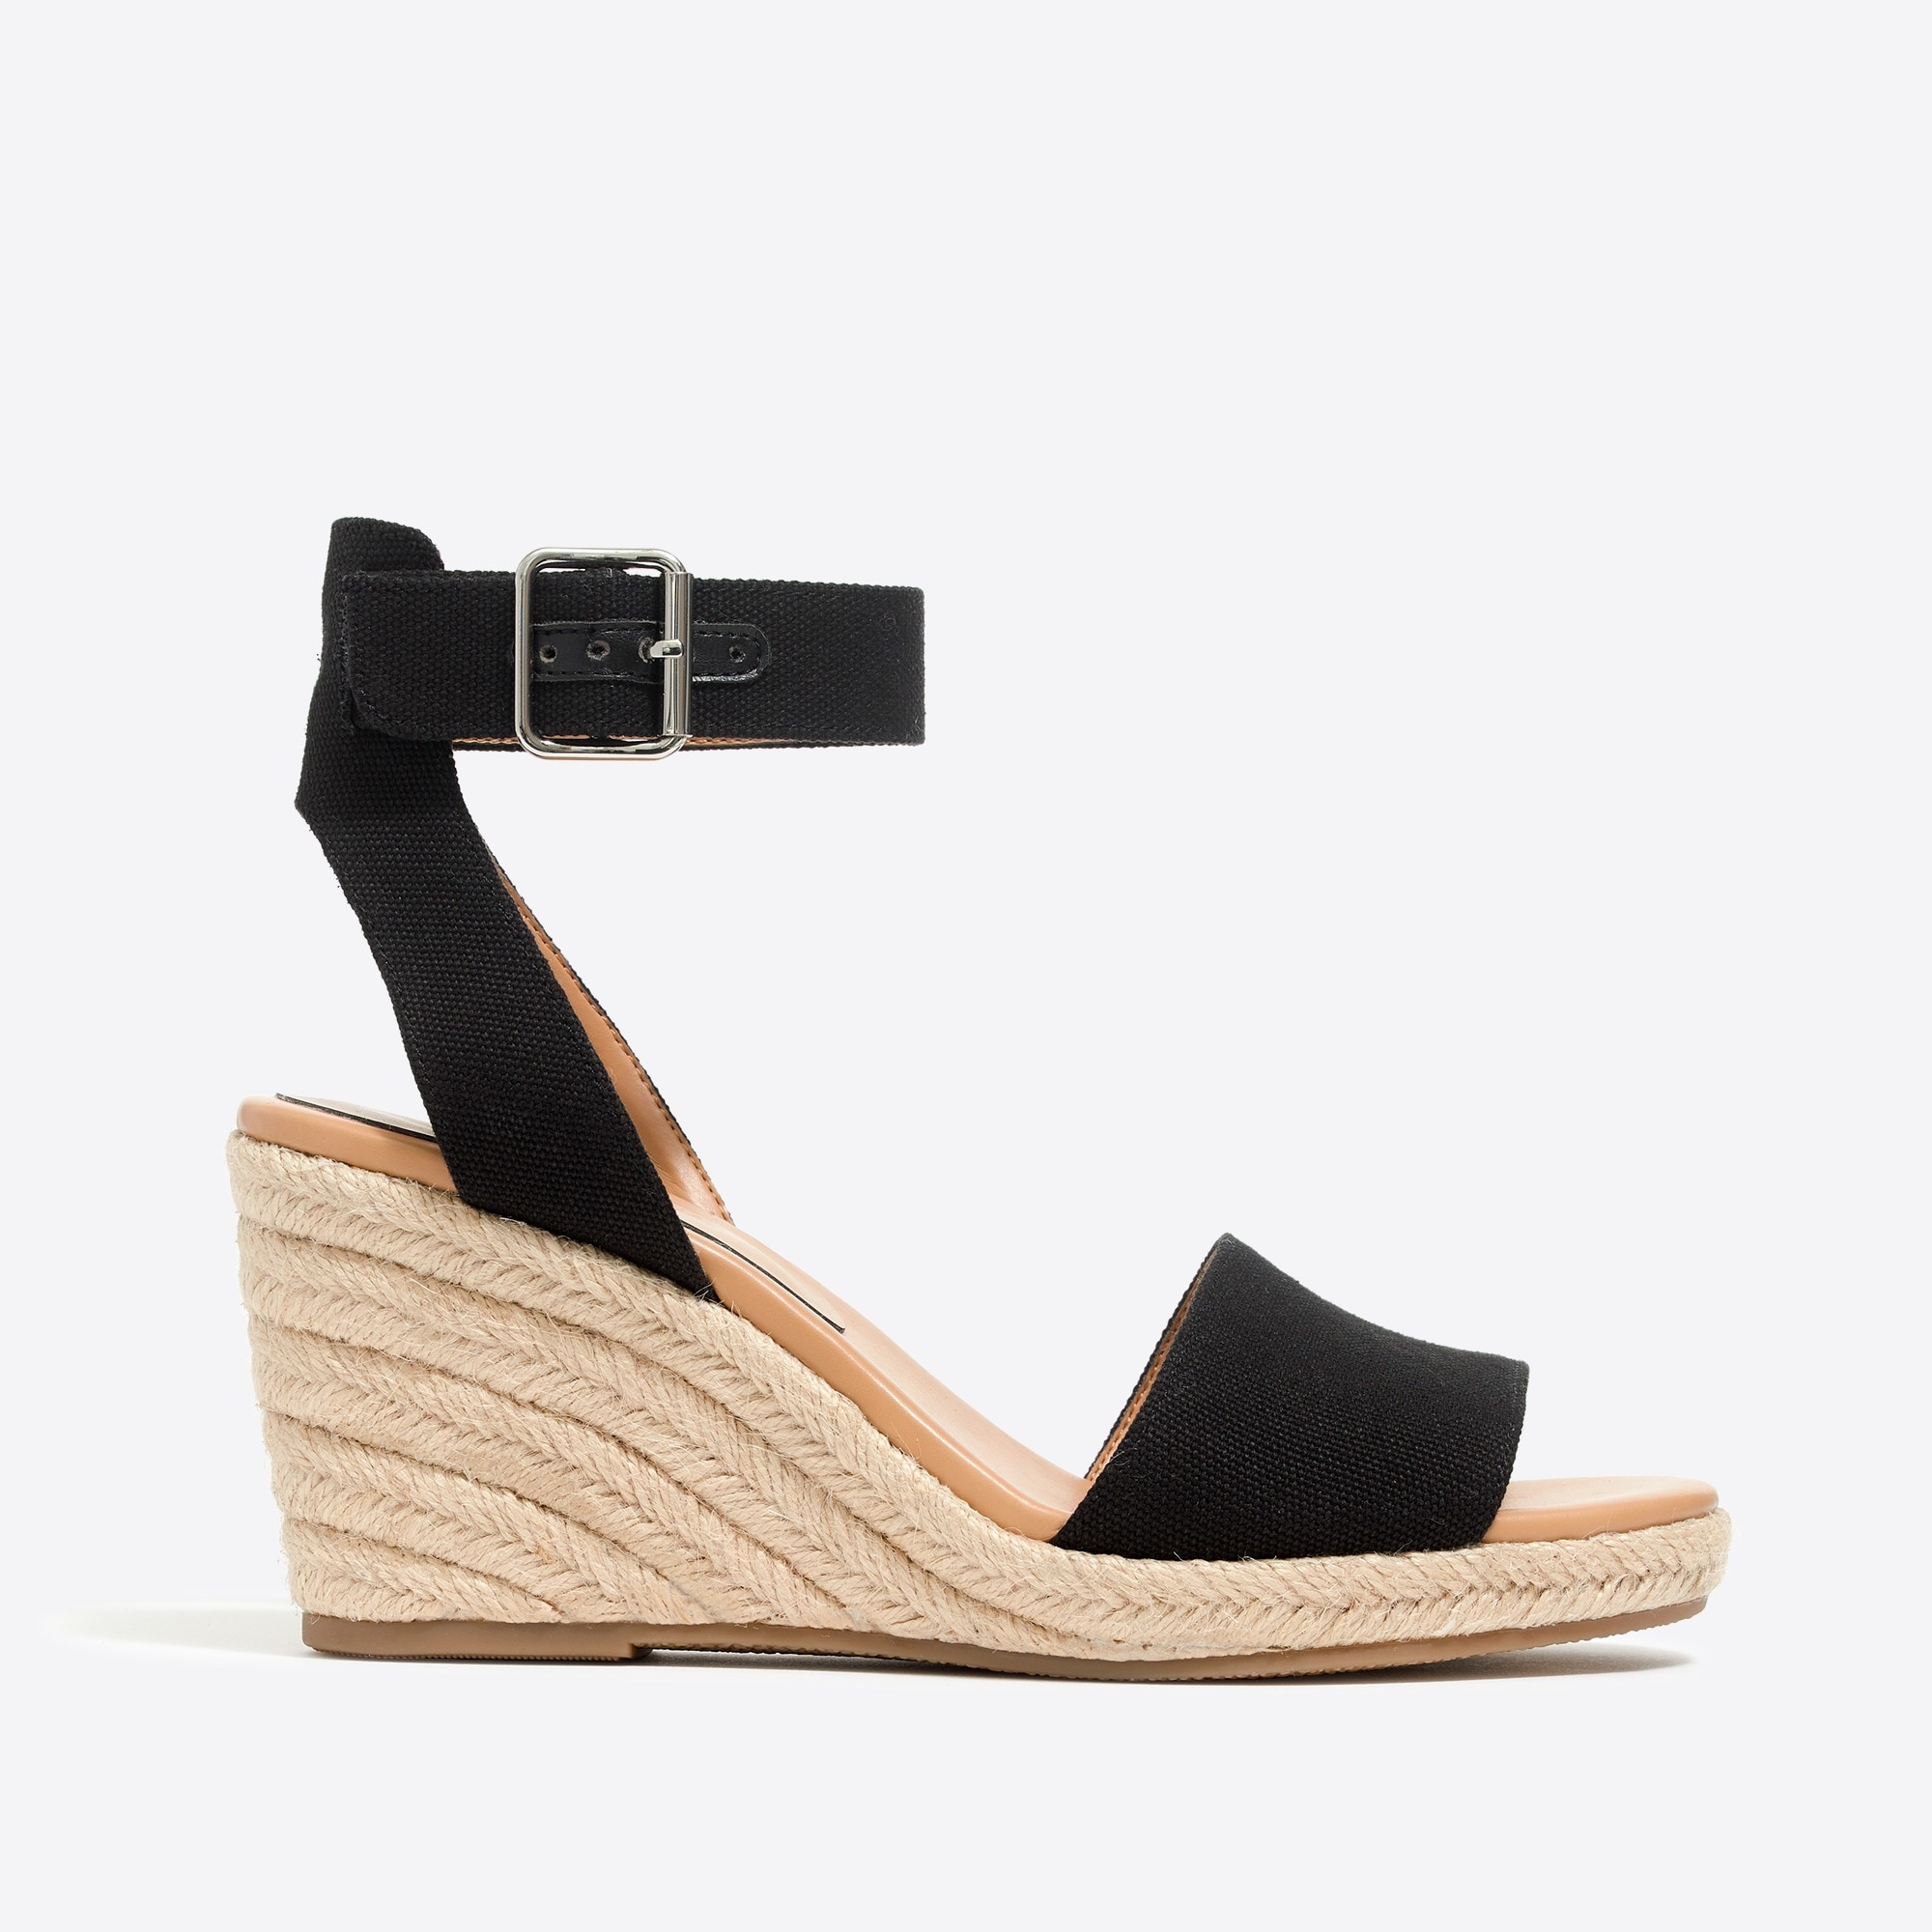 Image 3 for Strappy canvas espadrille wedges